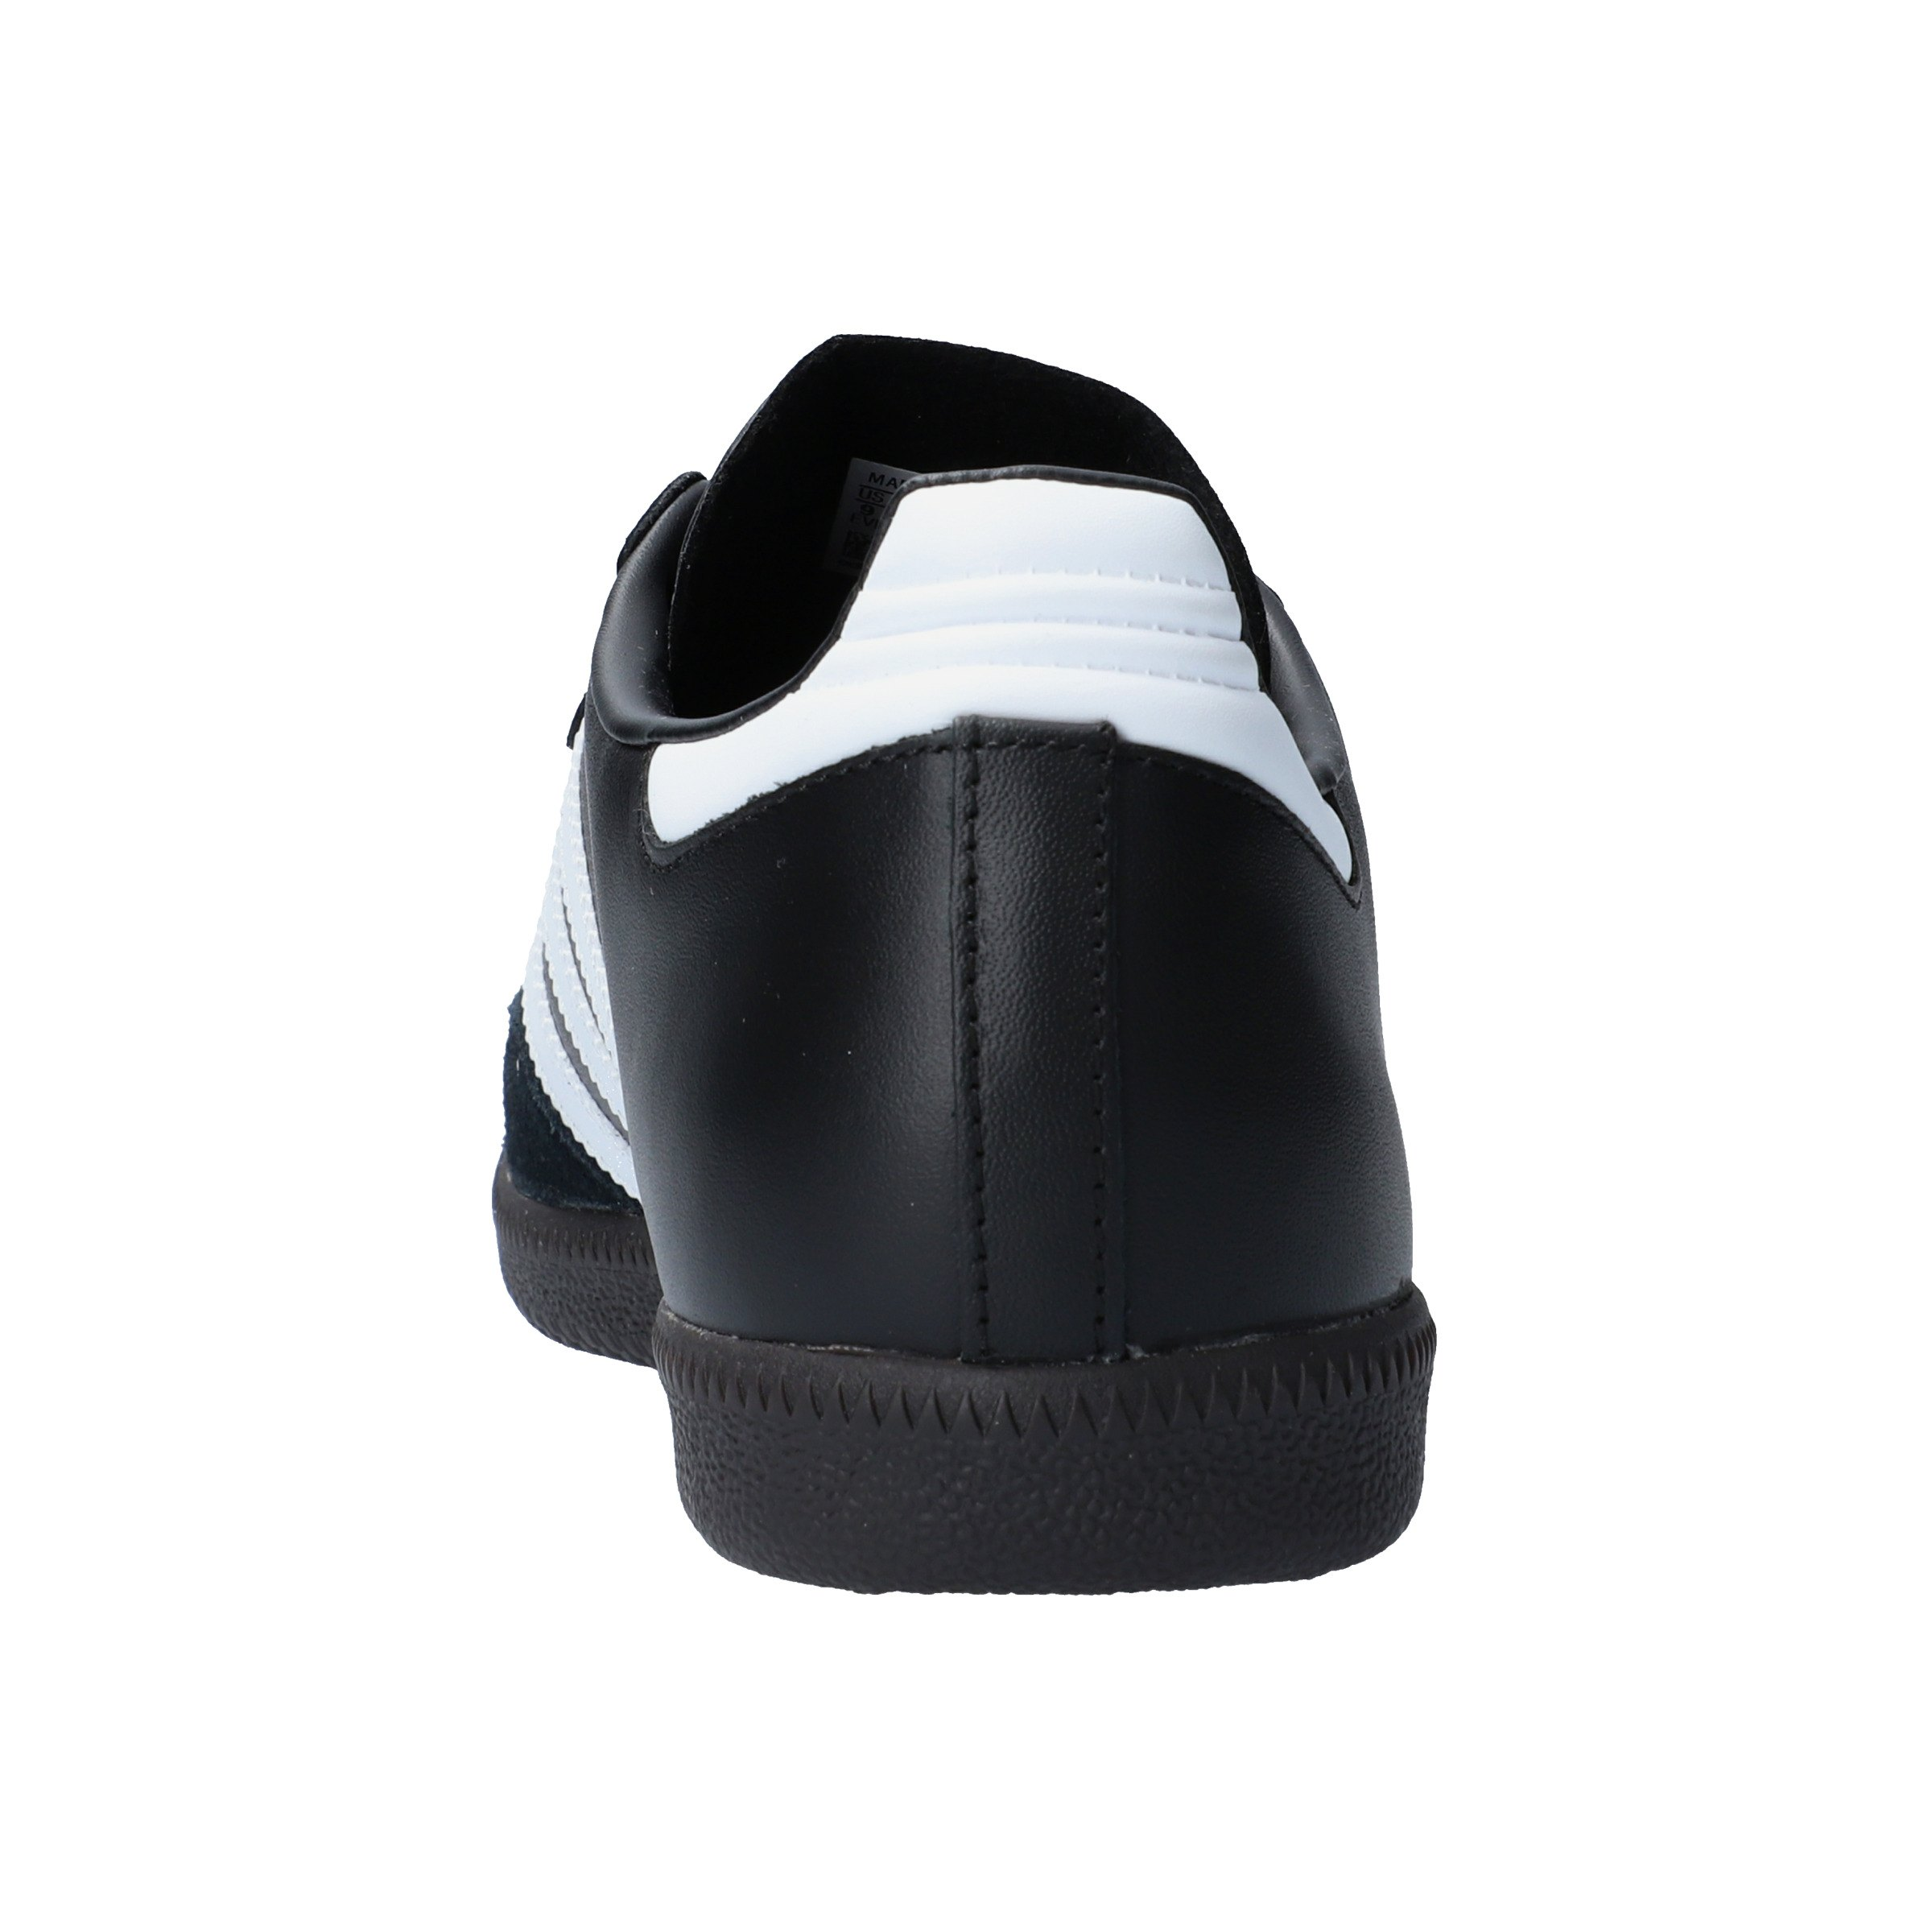 the cheapest great look huge selection of adidas Samba Hallenschuh Leder Schwarz Weiss